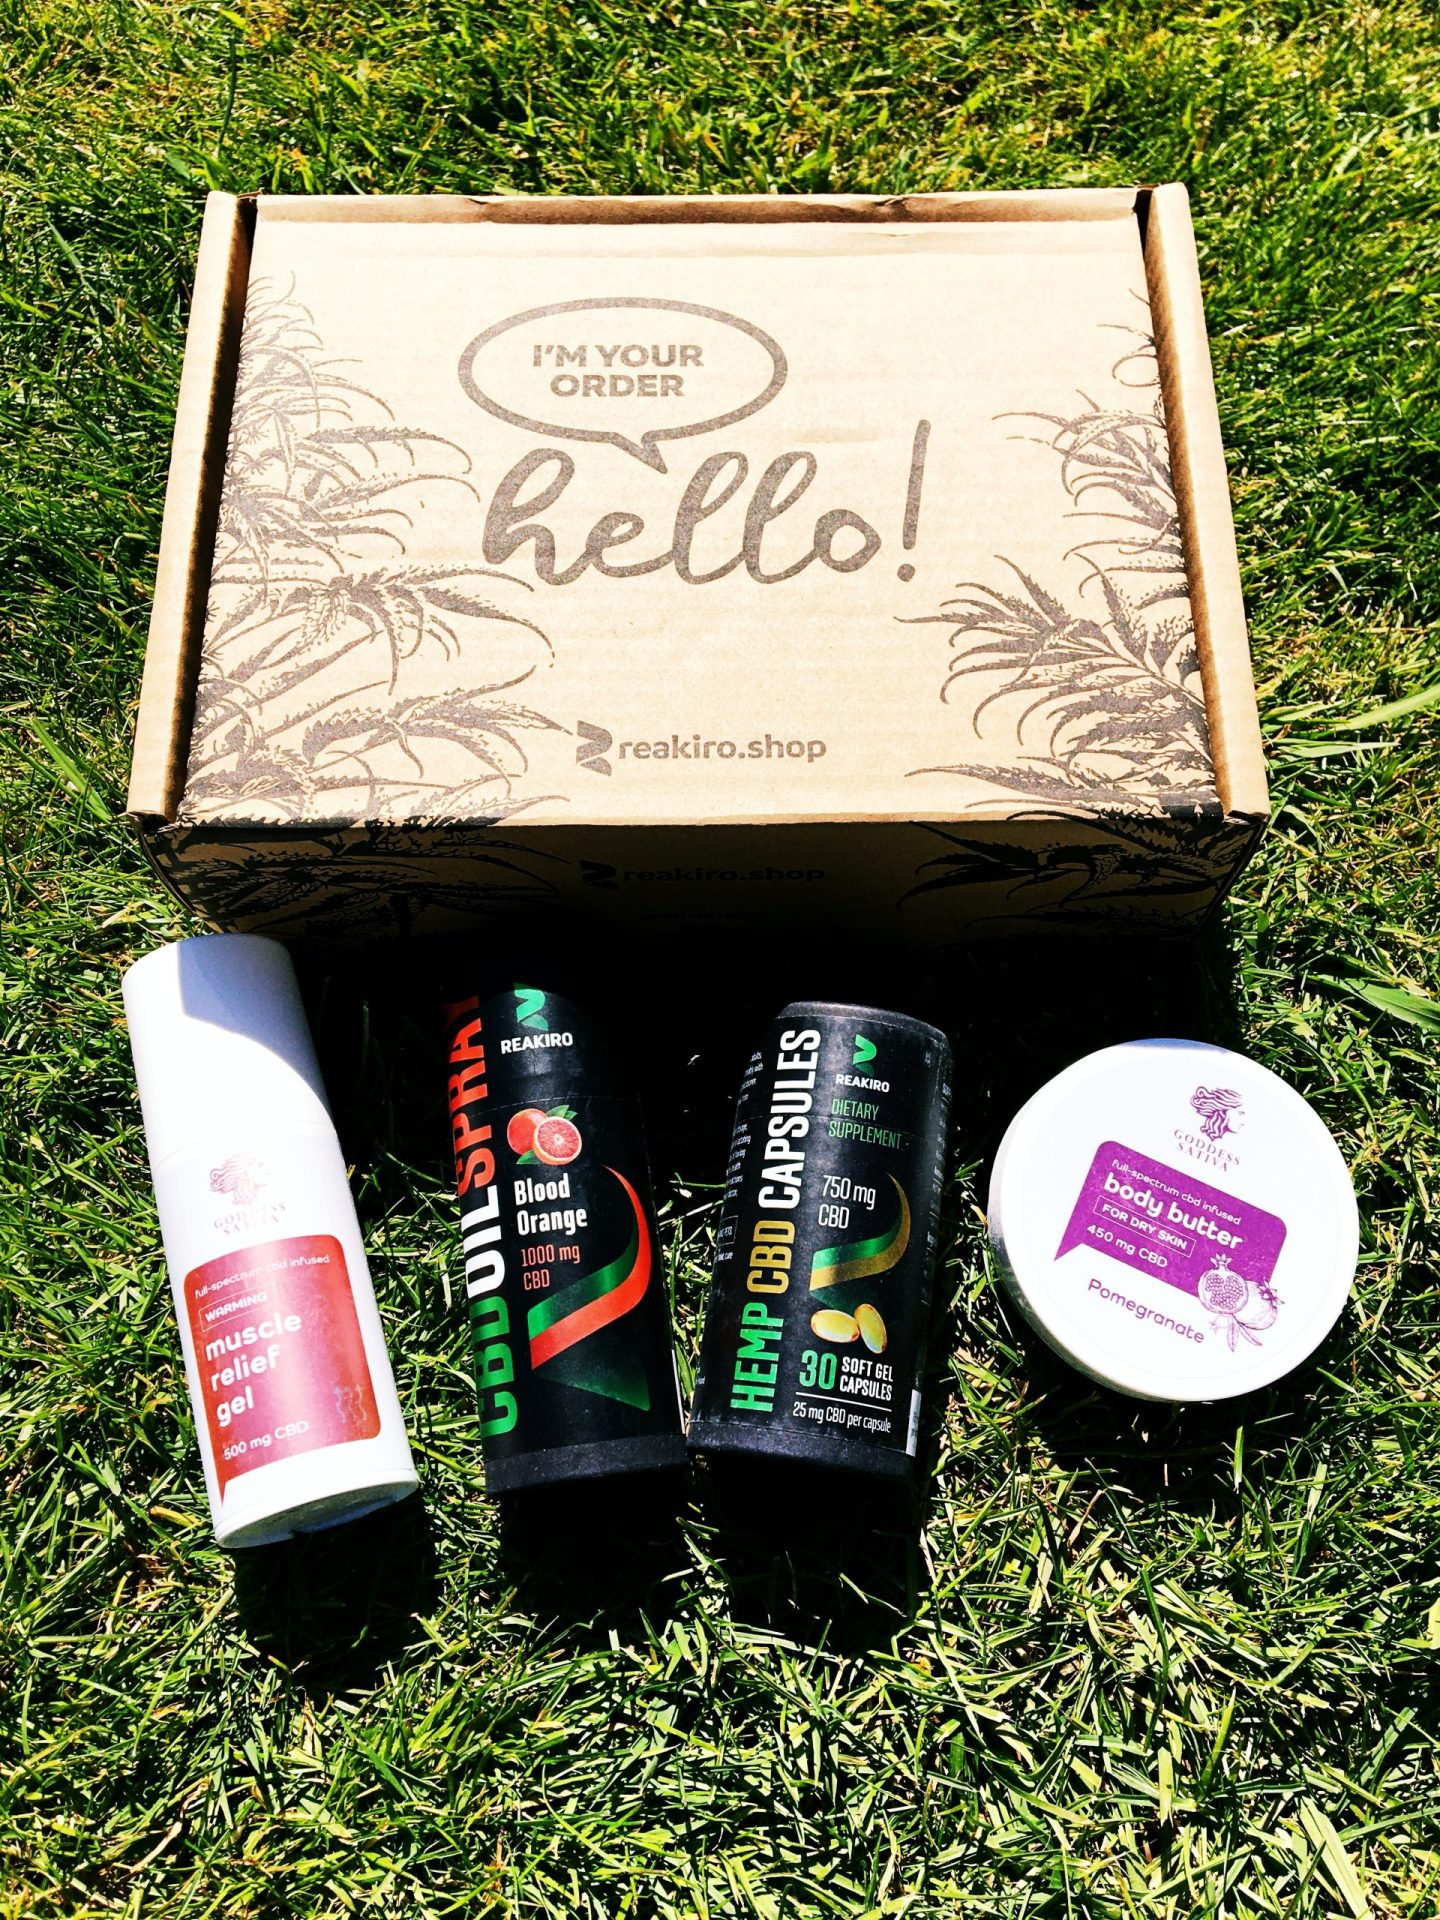 All four products laid out side by side on the grass in front, with the box they arrived in saying 'hello, I'm your order' behind them.